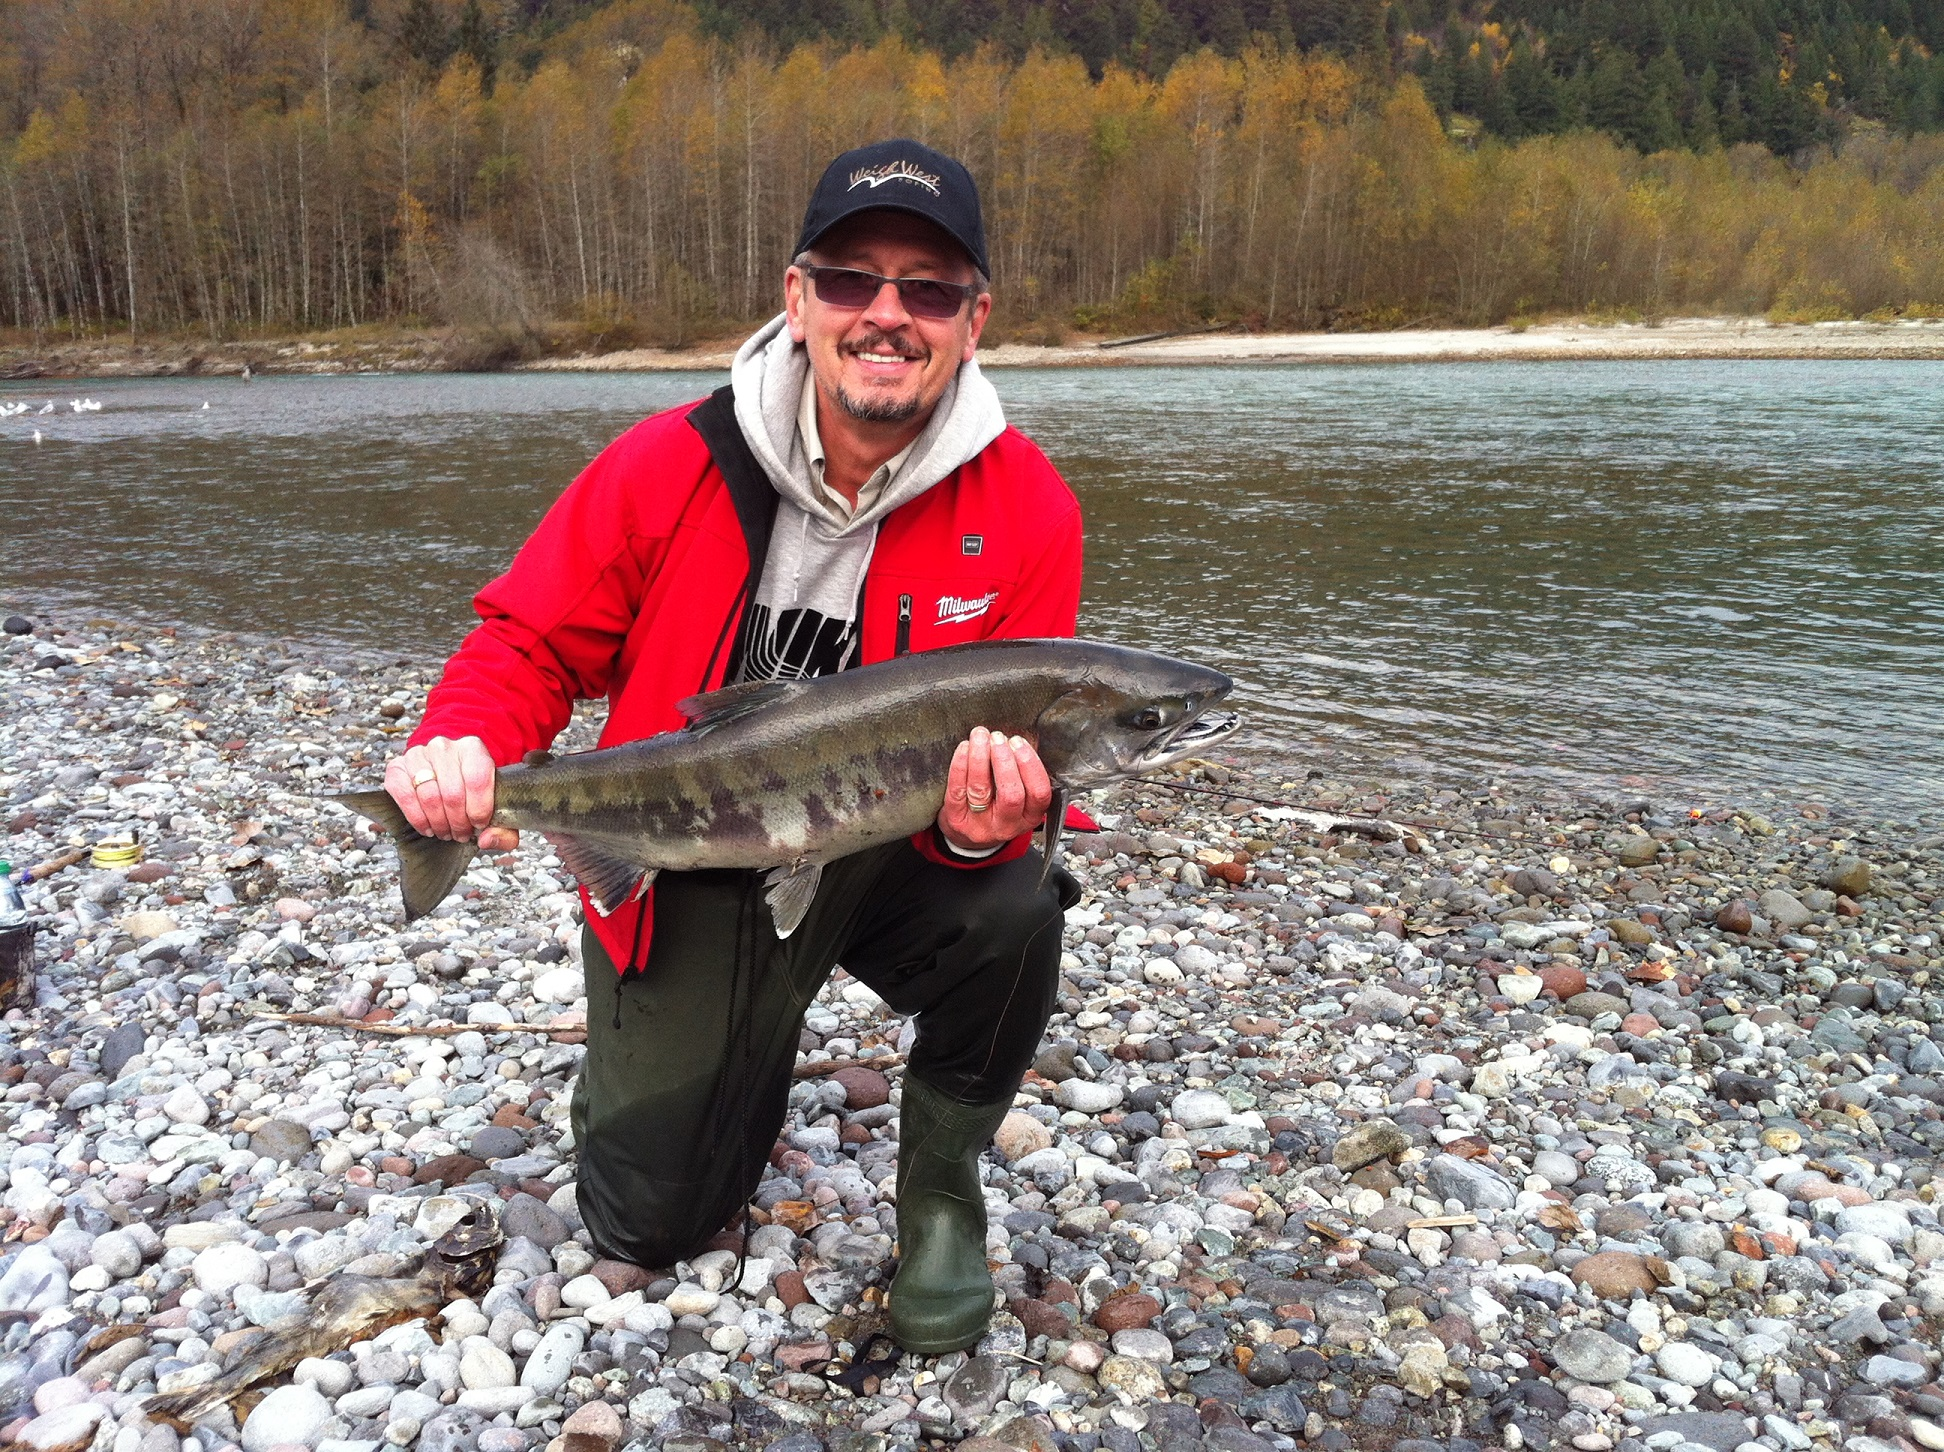 Squamish River - Chum Salmon - Dan